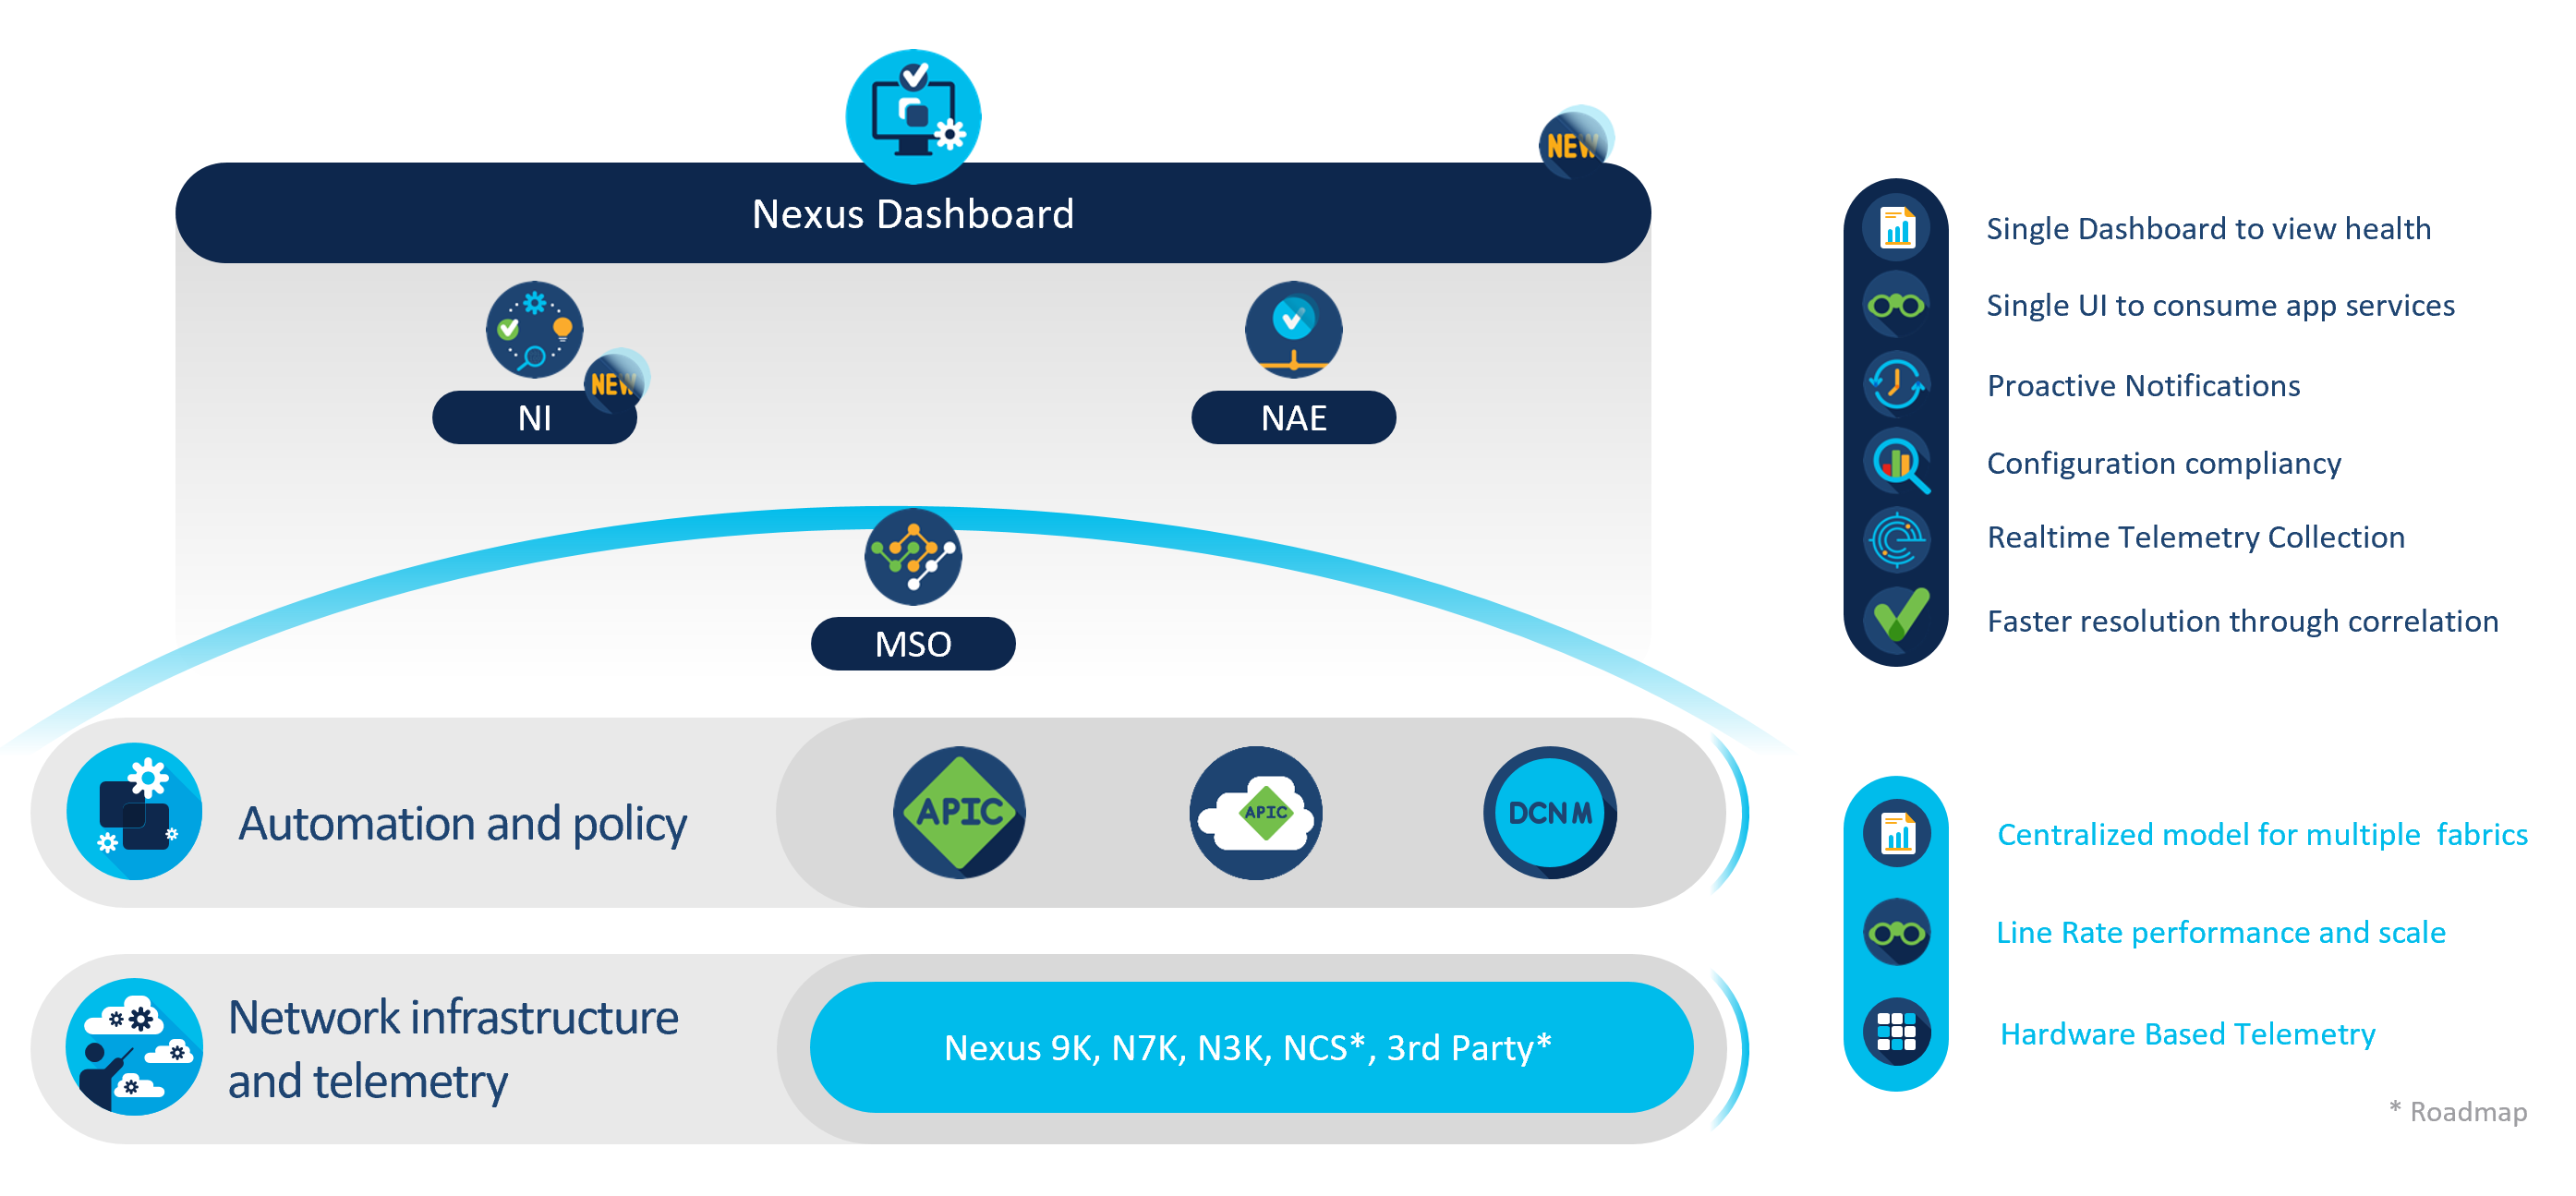 Nexus Dashboard is a single pane of glass across Cisco ACI/APIC and Cisco NX-OS/DCNM controllers.